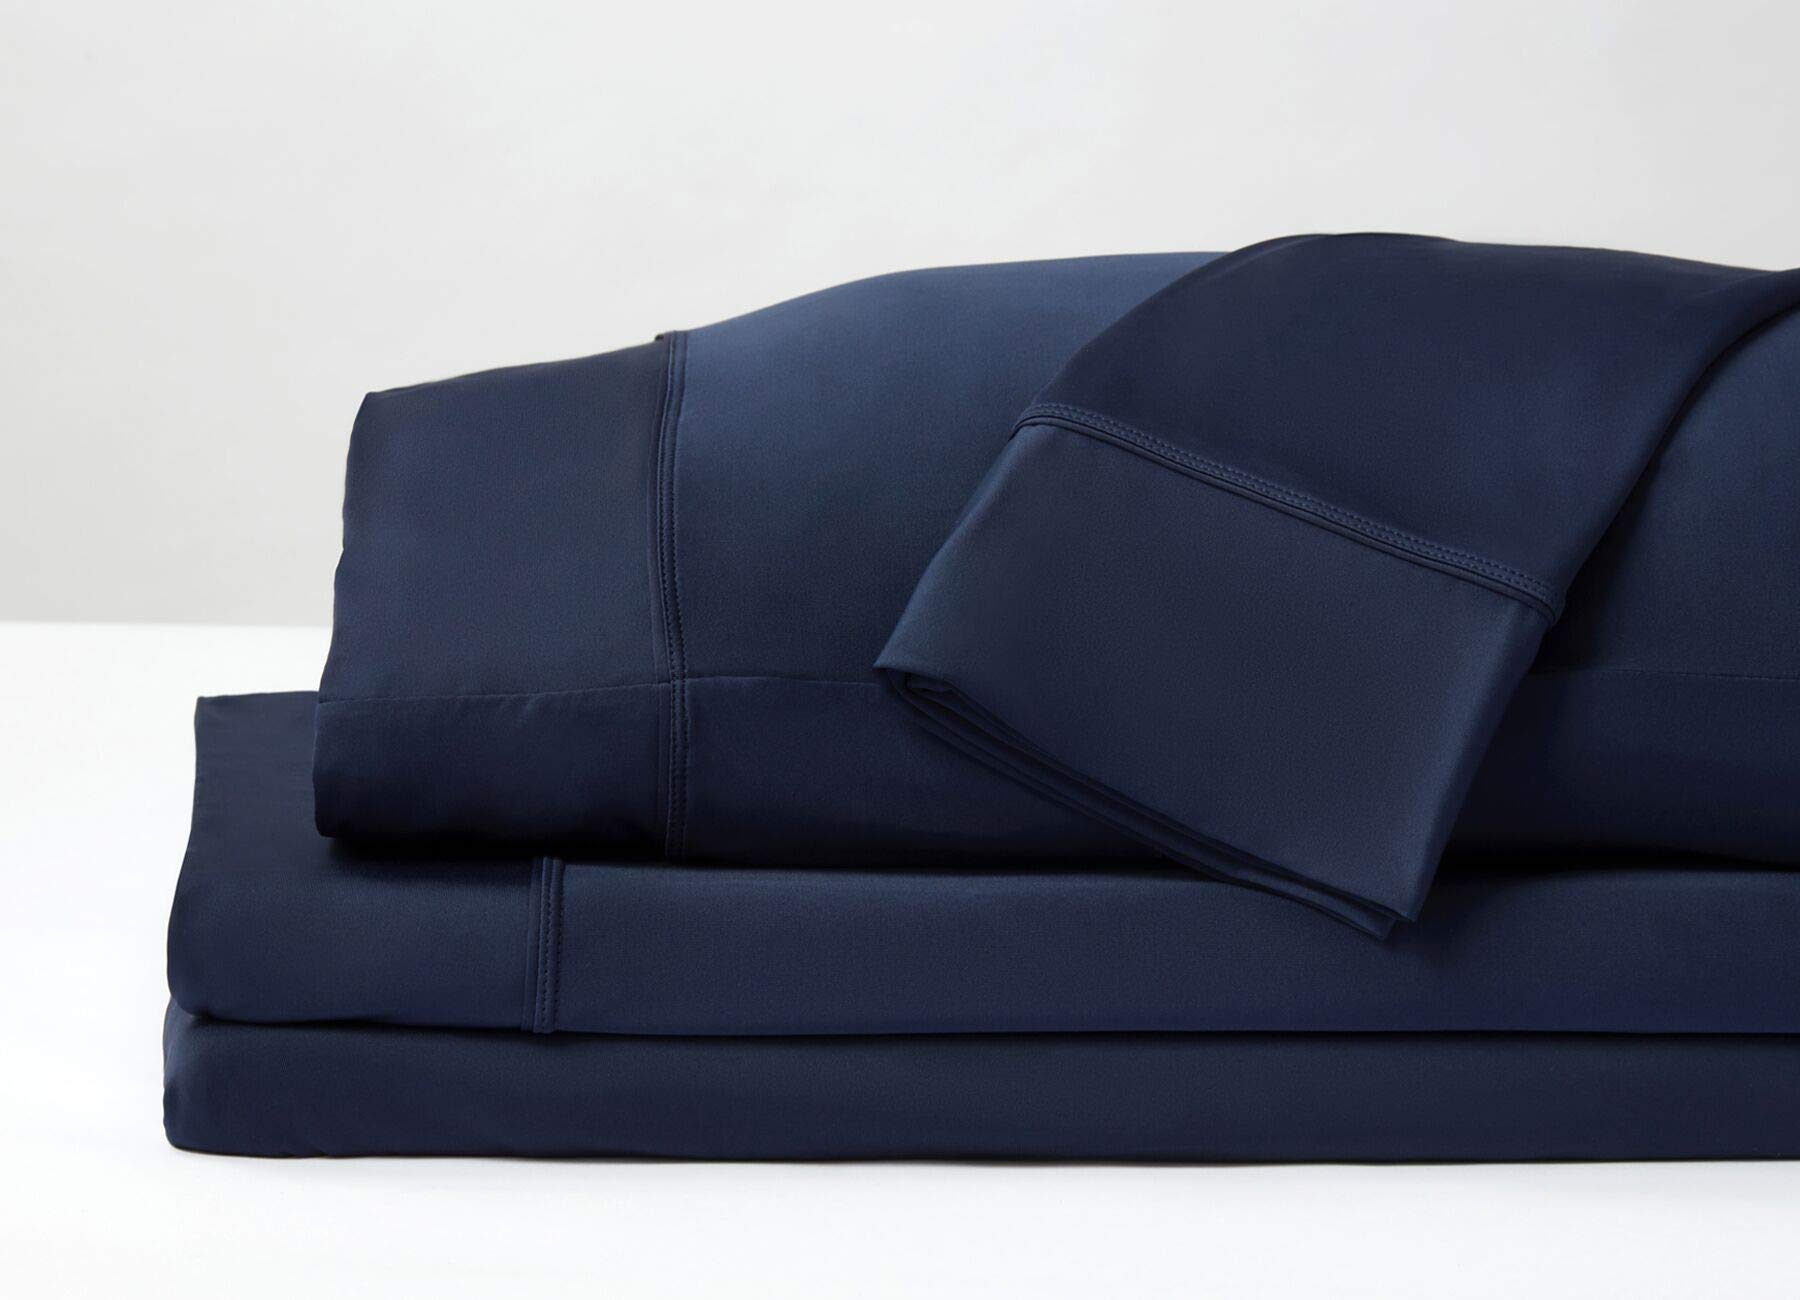 SHEEX - Original Performance Sheet Set with 2 Pillowcases, Ulta-Soft Fabric Transfers Heat and Breathes Better Than Traditional Cotton - Navy, Full